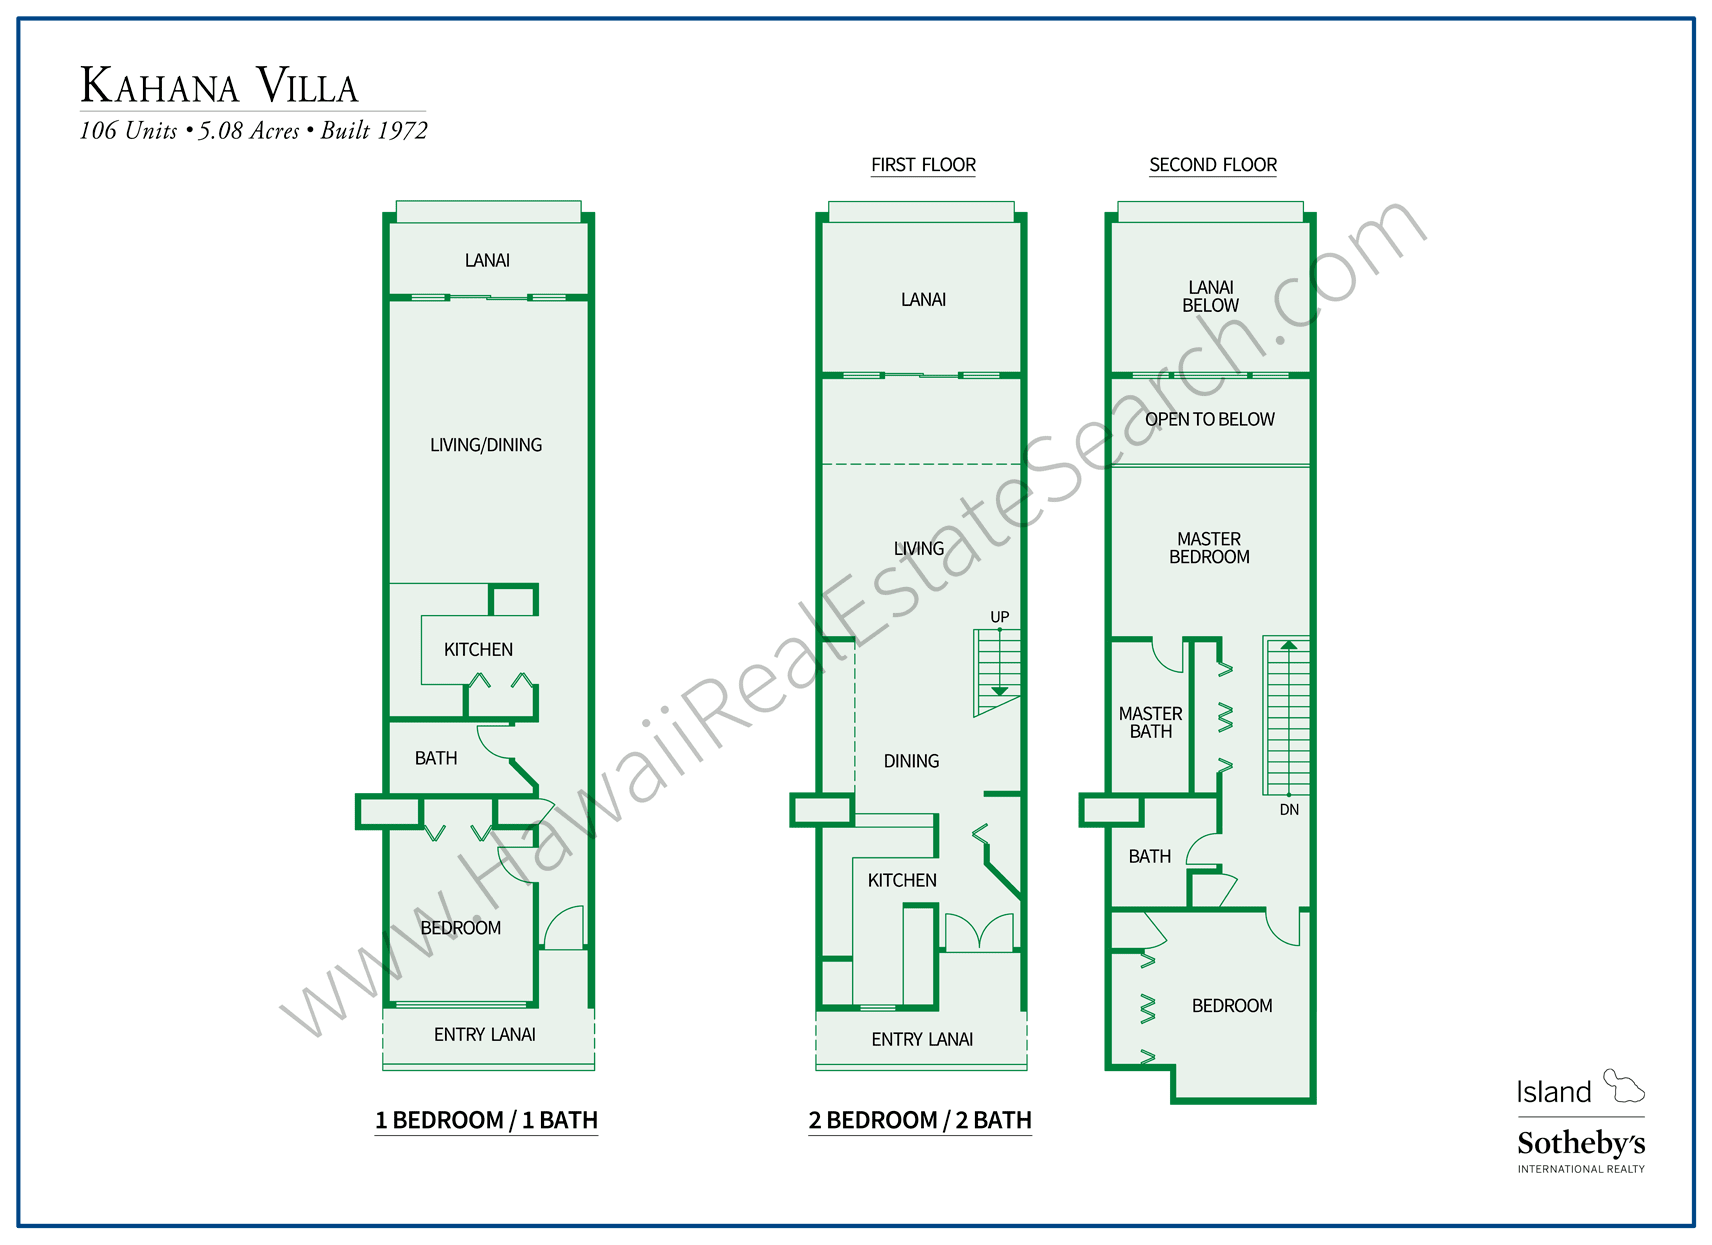 Kahana Villa Floor Plans